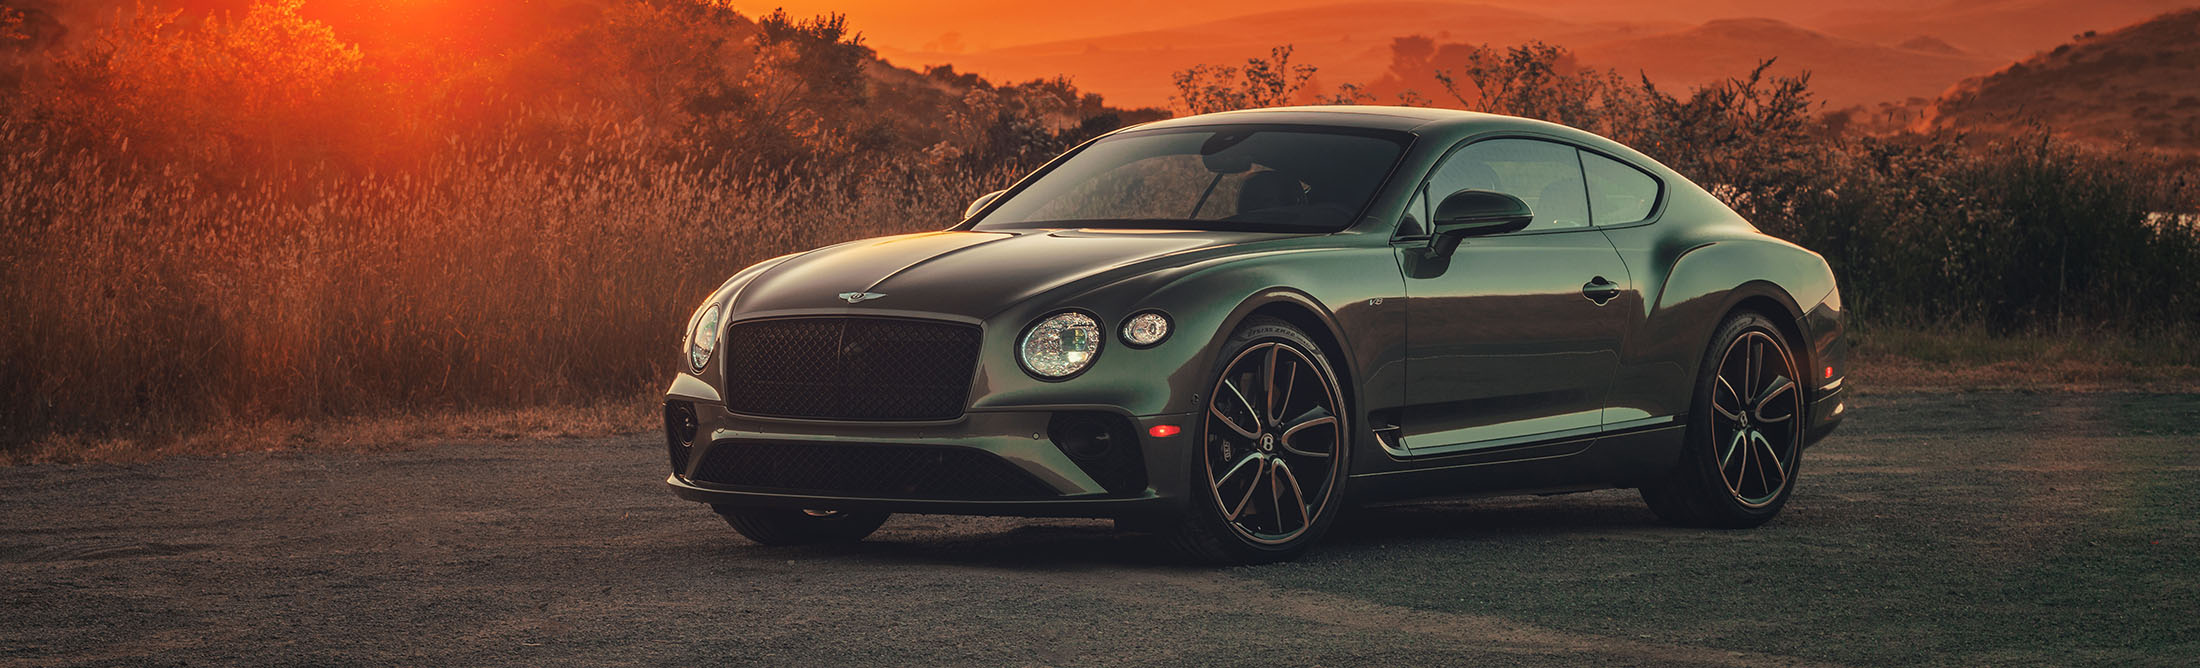 2020 Bentley Continental Gt V8 Review When Less Is So Much More Bloomberg